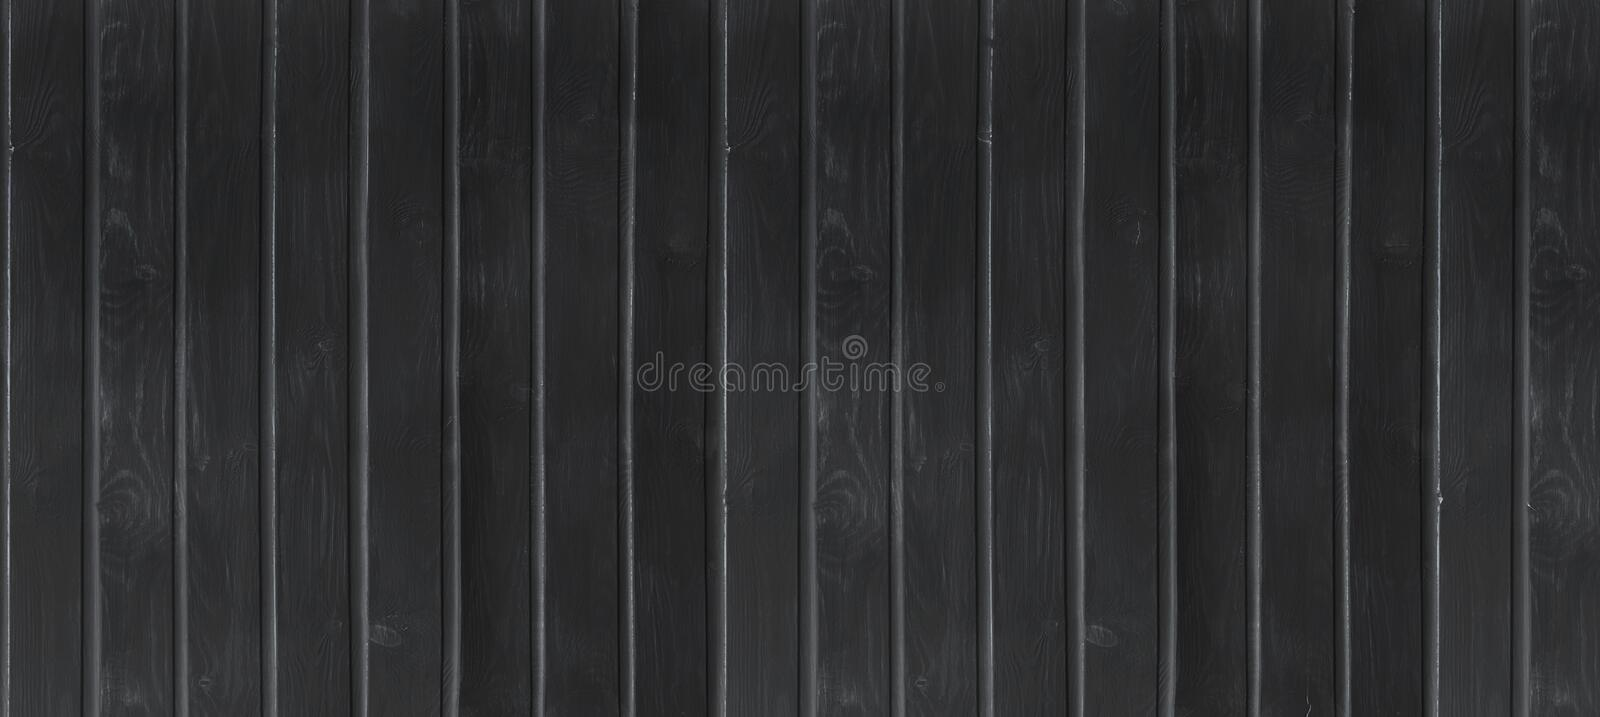 Black wood vintage or grungy background. Wooden old texture as a retro pattern layout. stock image